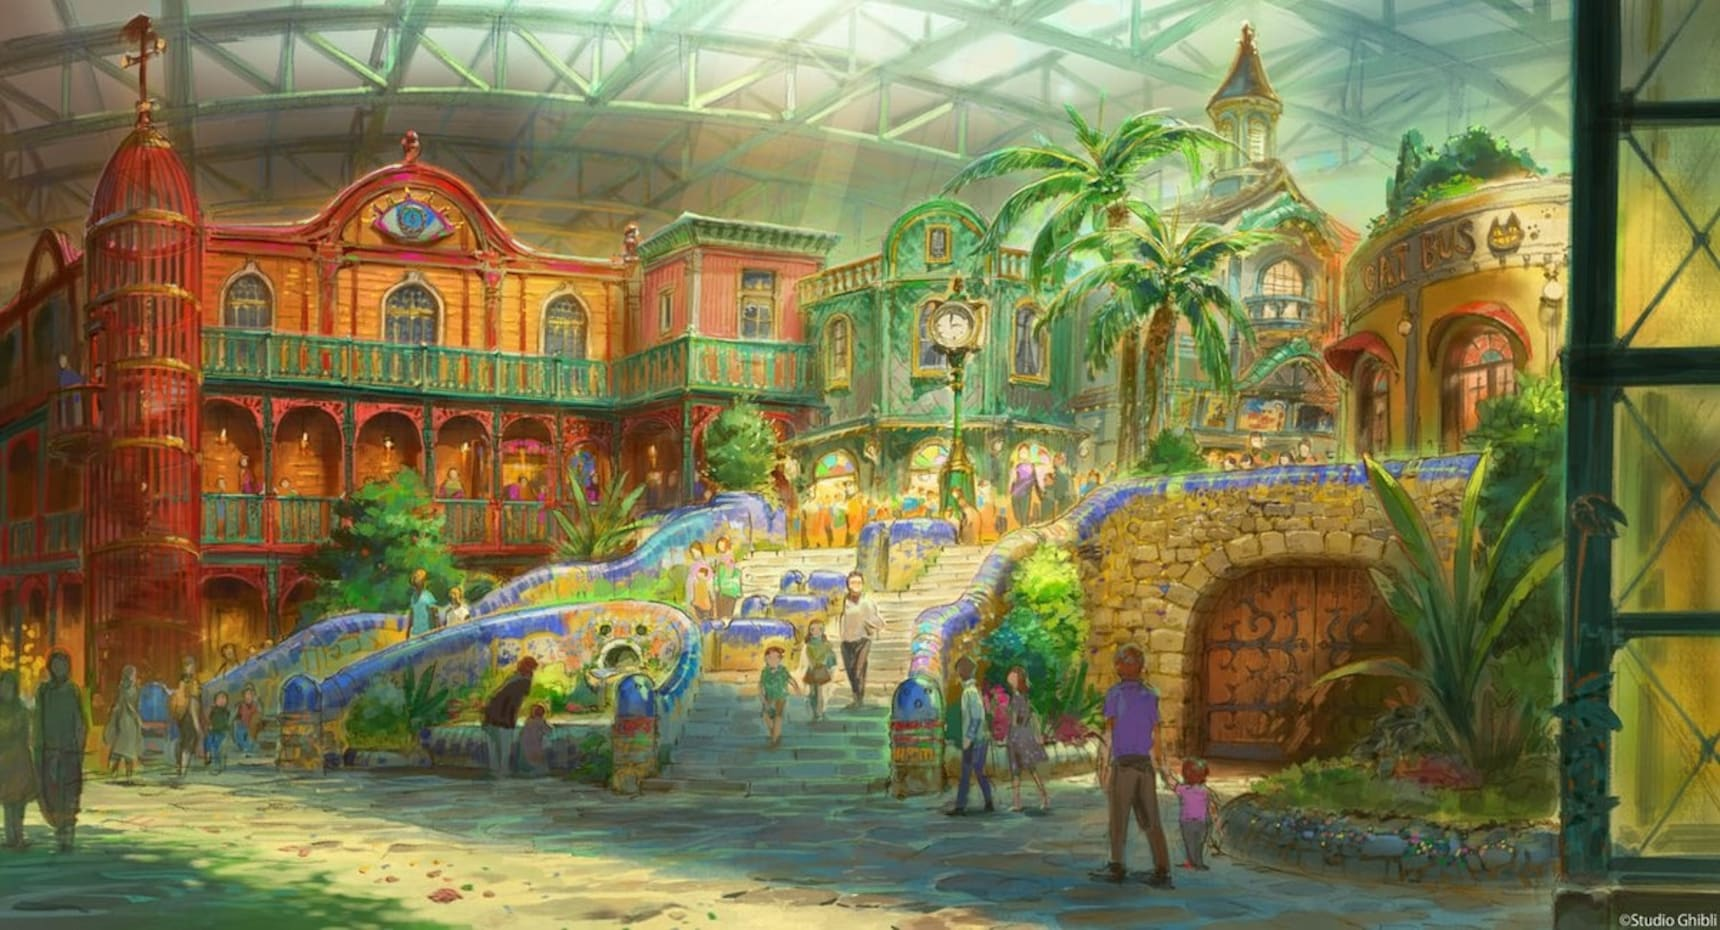 Take a Peek at Ghibli Theme Park Concept Art!